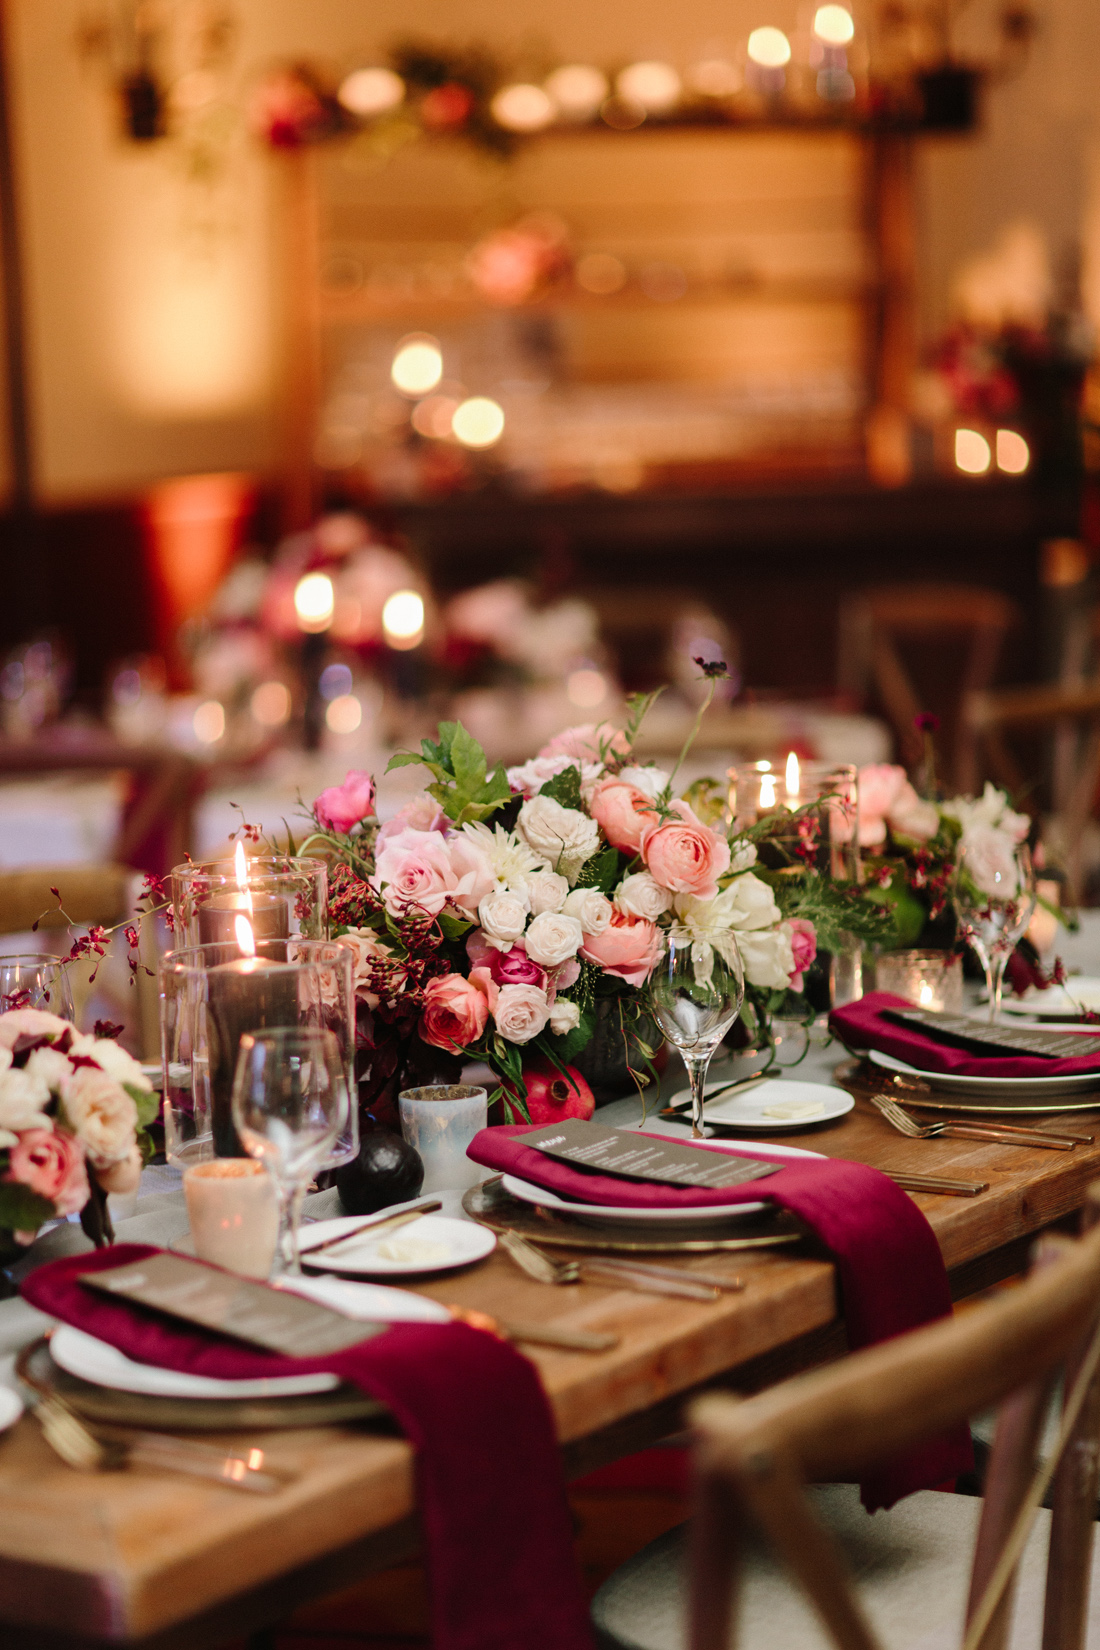 Fall-Inspired Wedding Reception Tablescapes